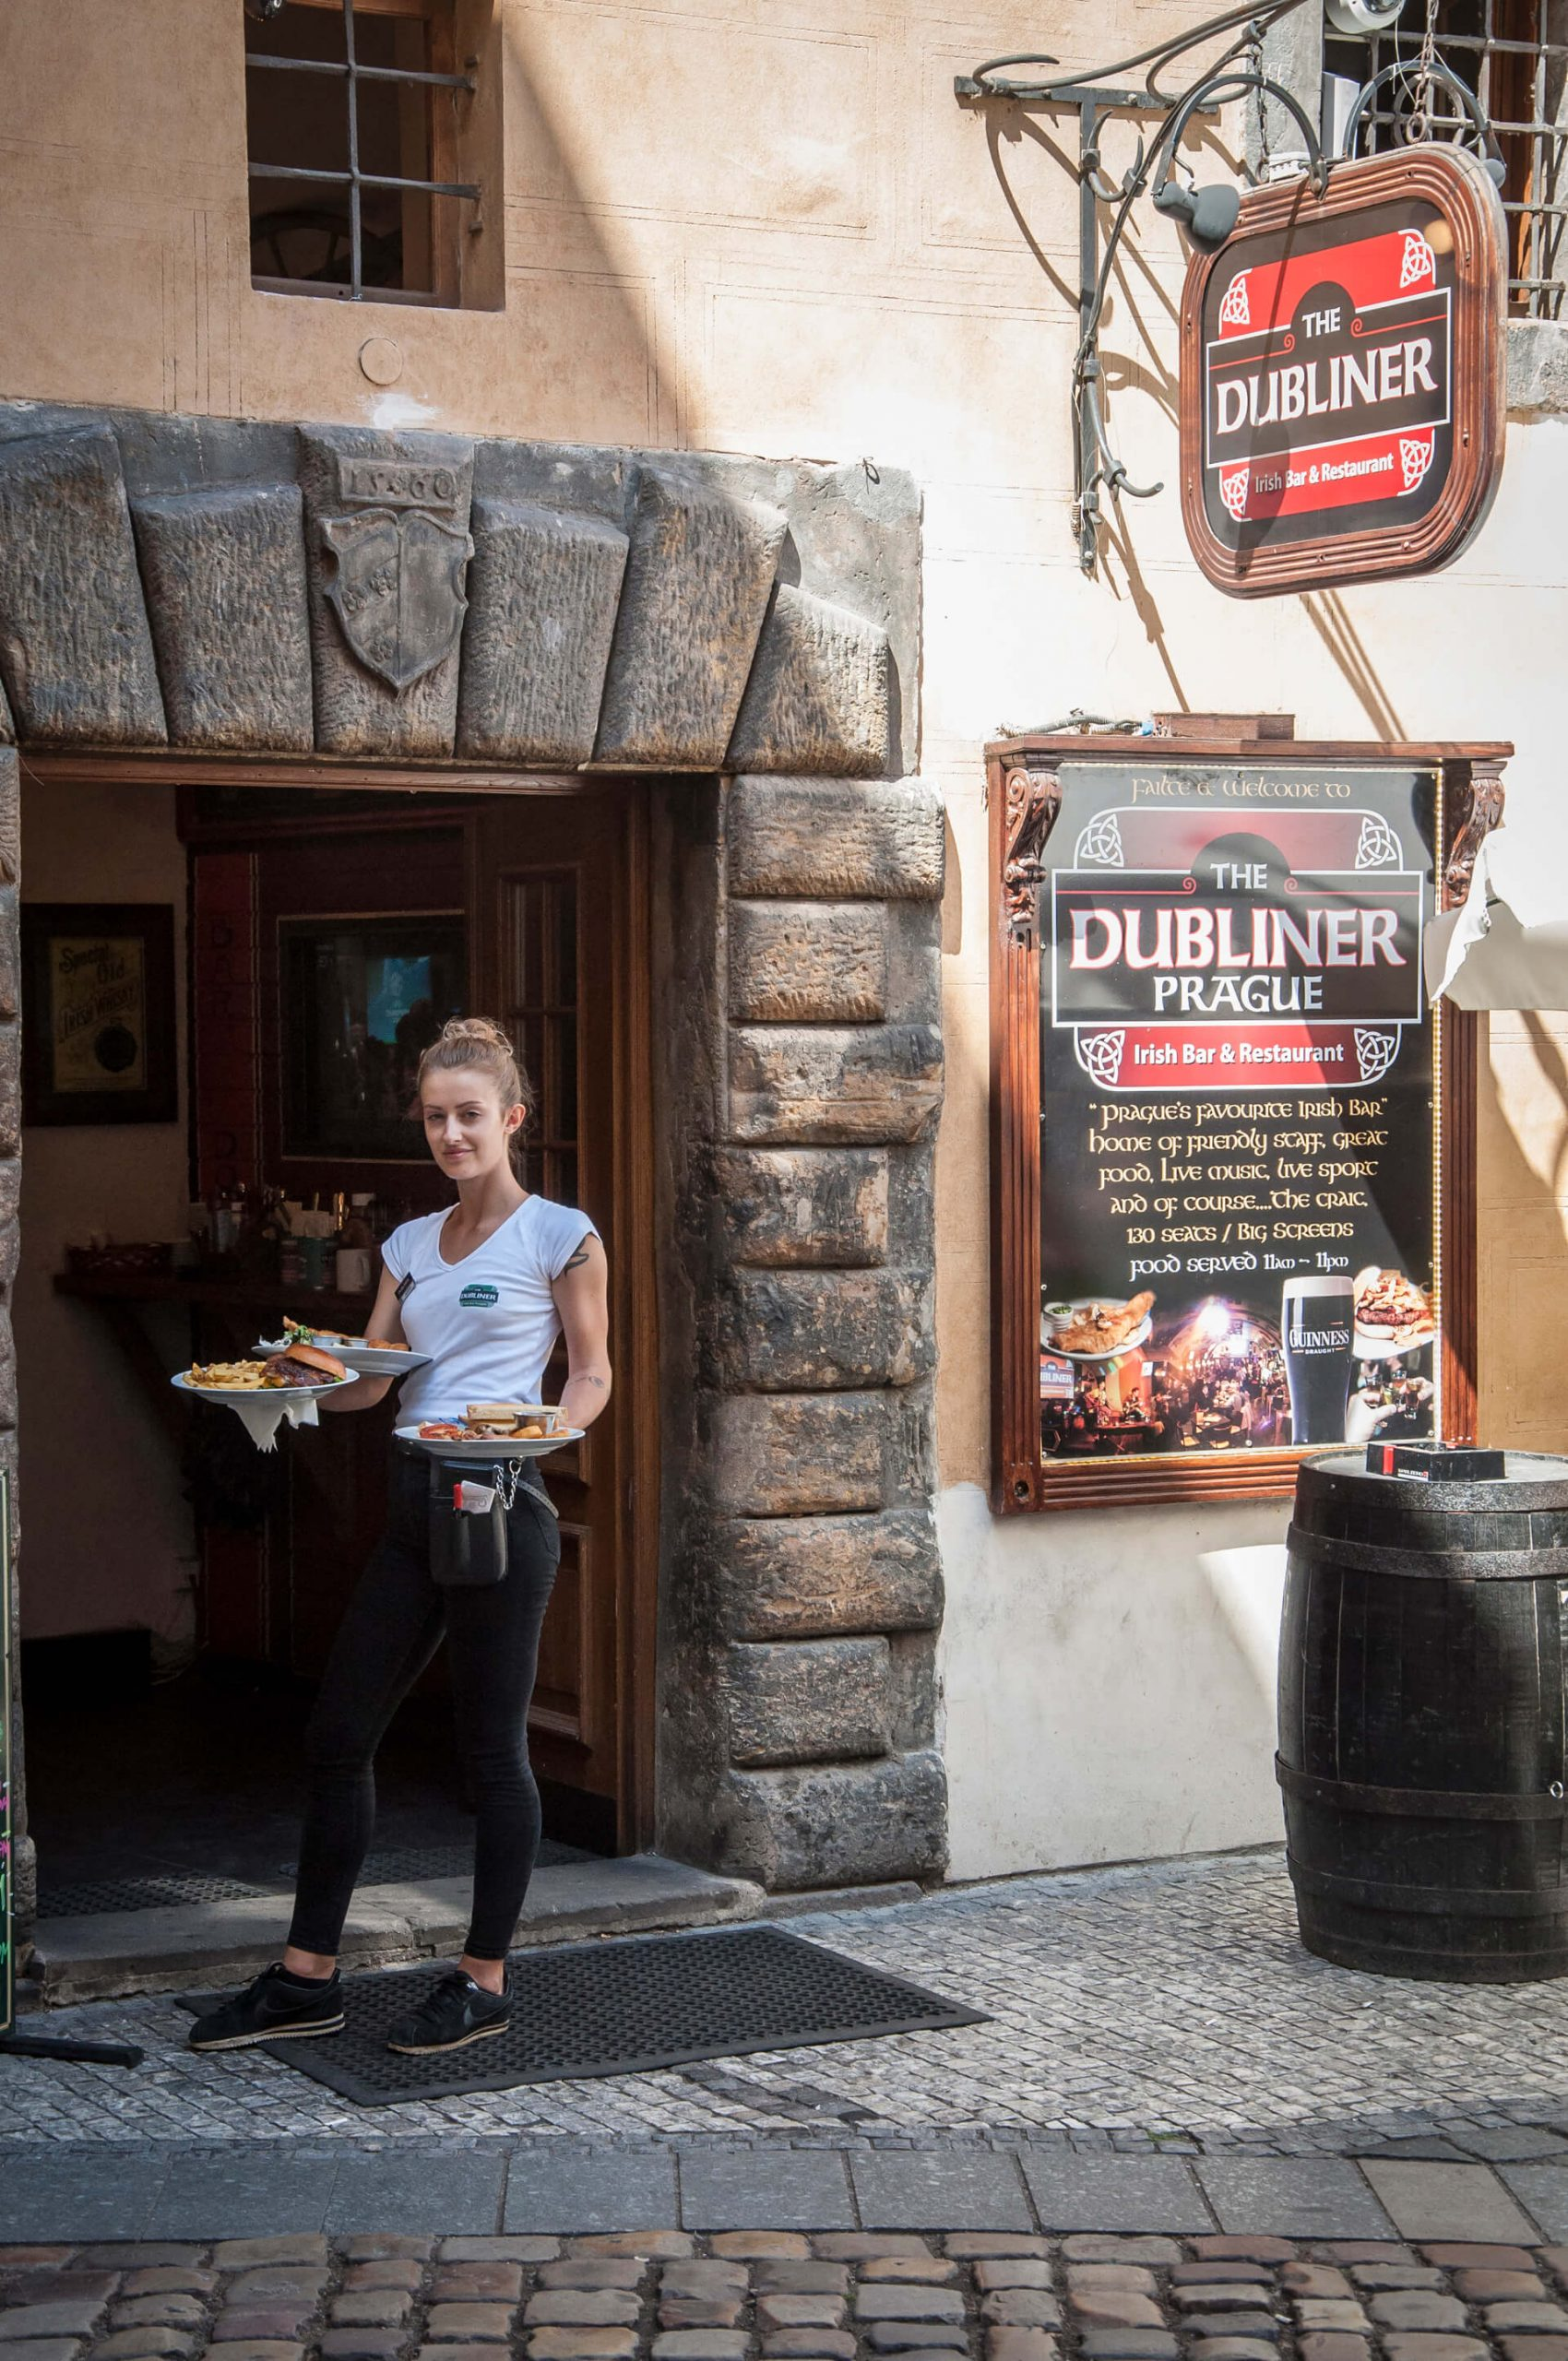 Gallery 045 | The Dubliner Prague Irish Bar